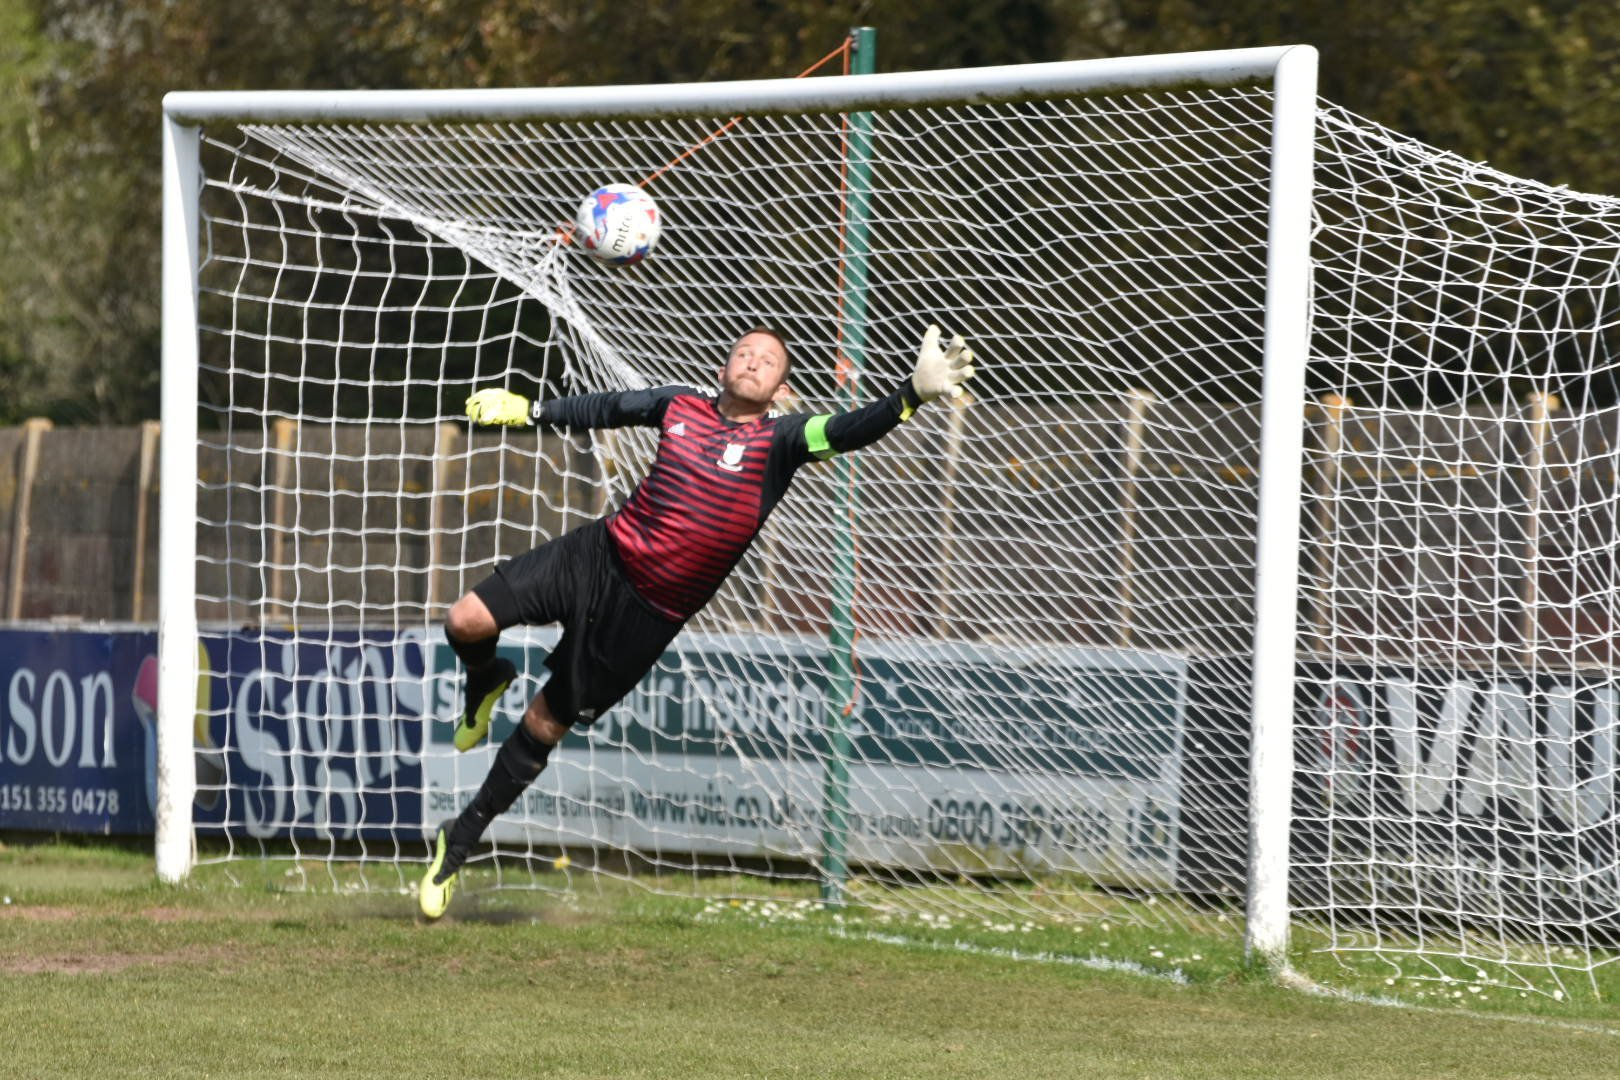 Rich Cowderoy shows his cat-like ability for Ellesmere Rangers